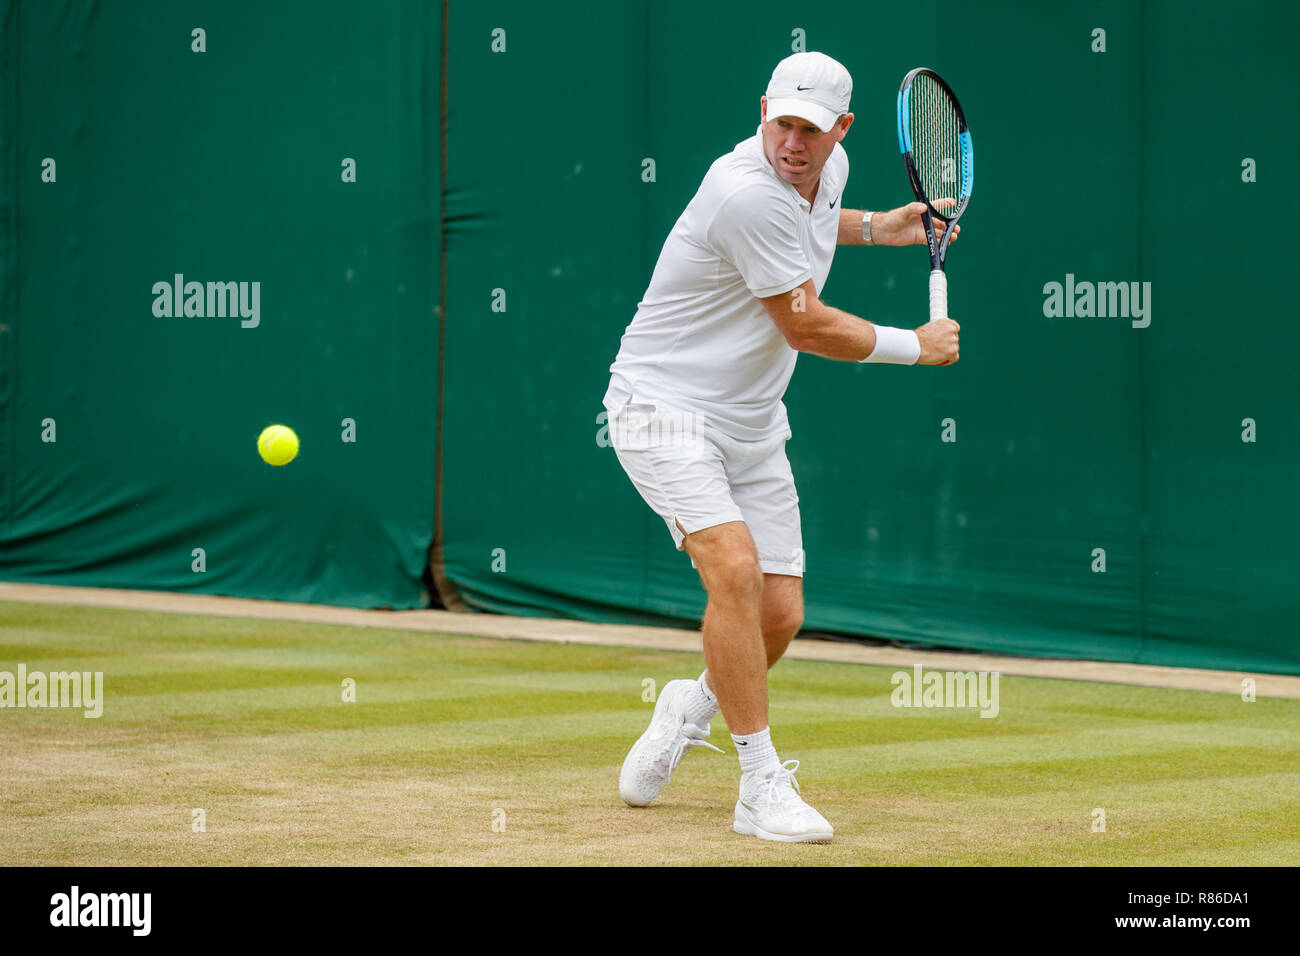 Tennis commentator Mark Petchey during the Wimbledon Championships 2019 - Stock Image